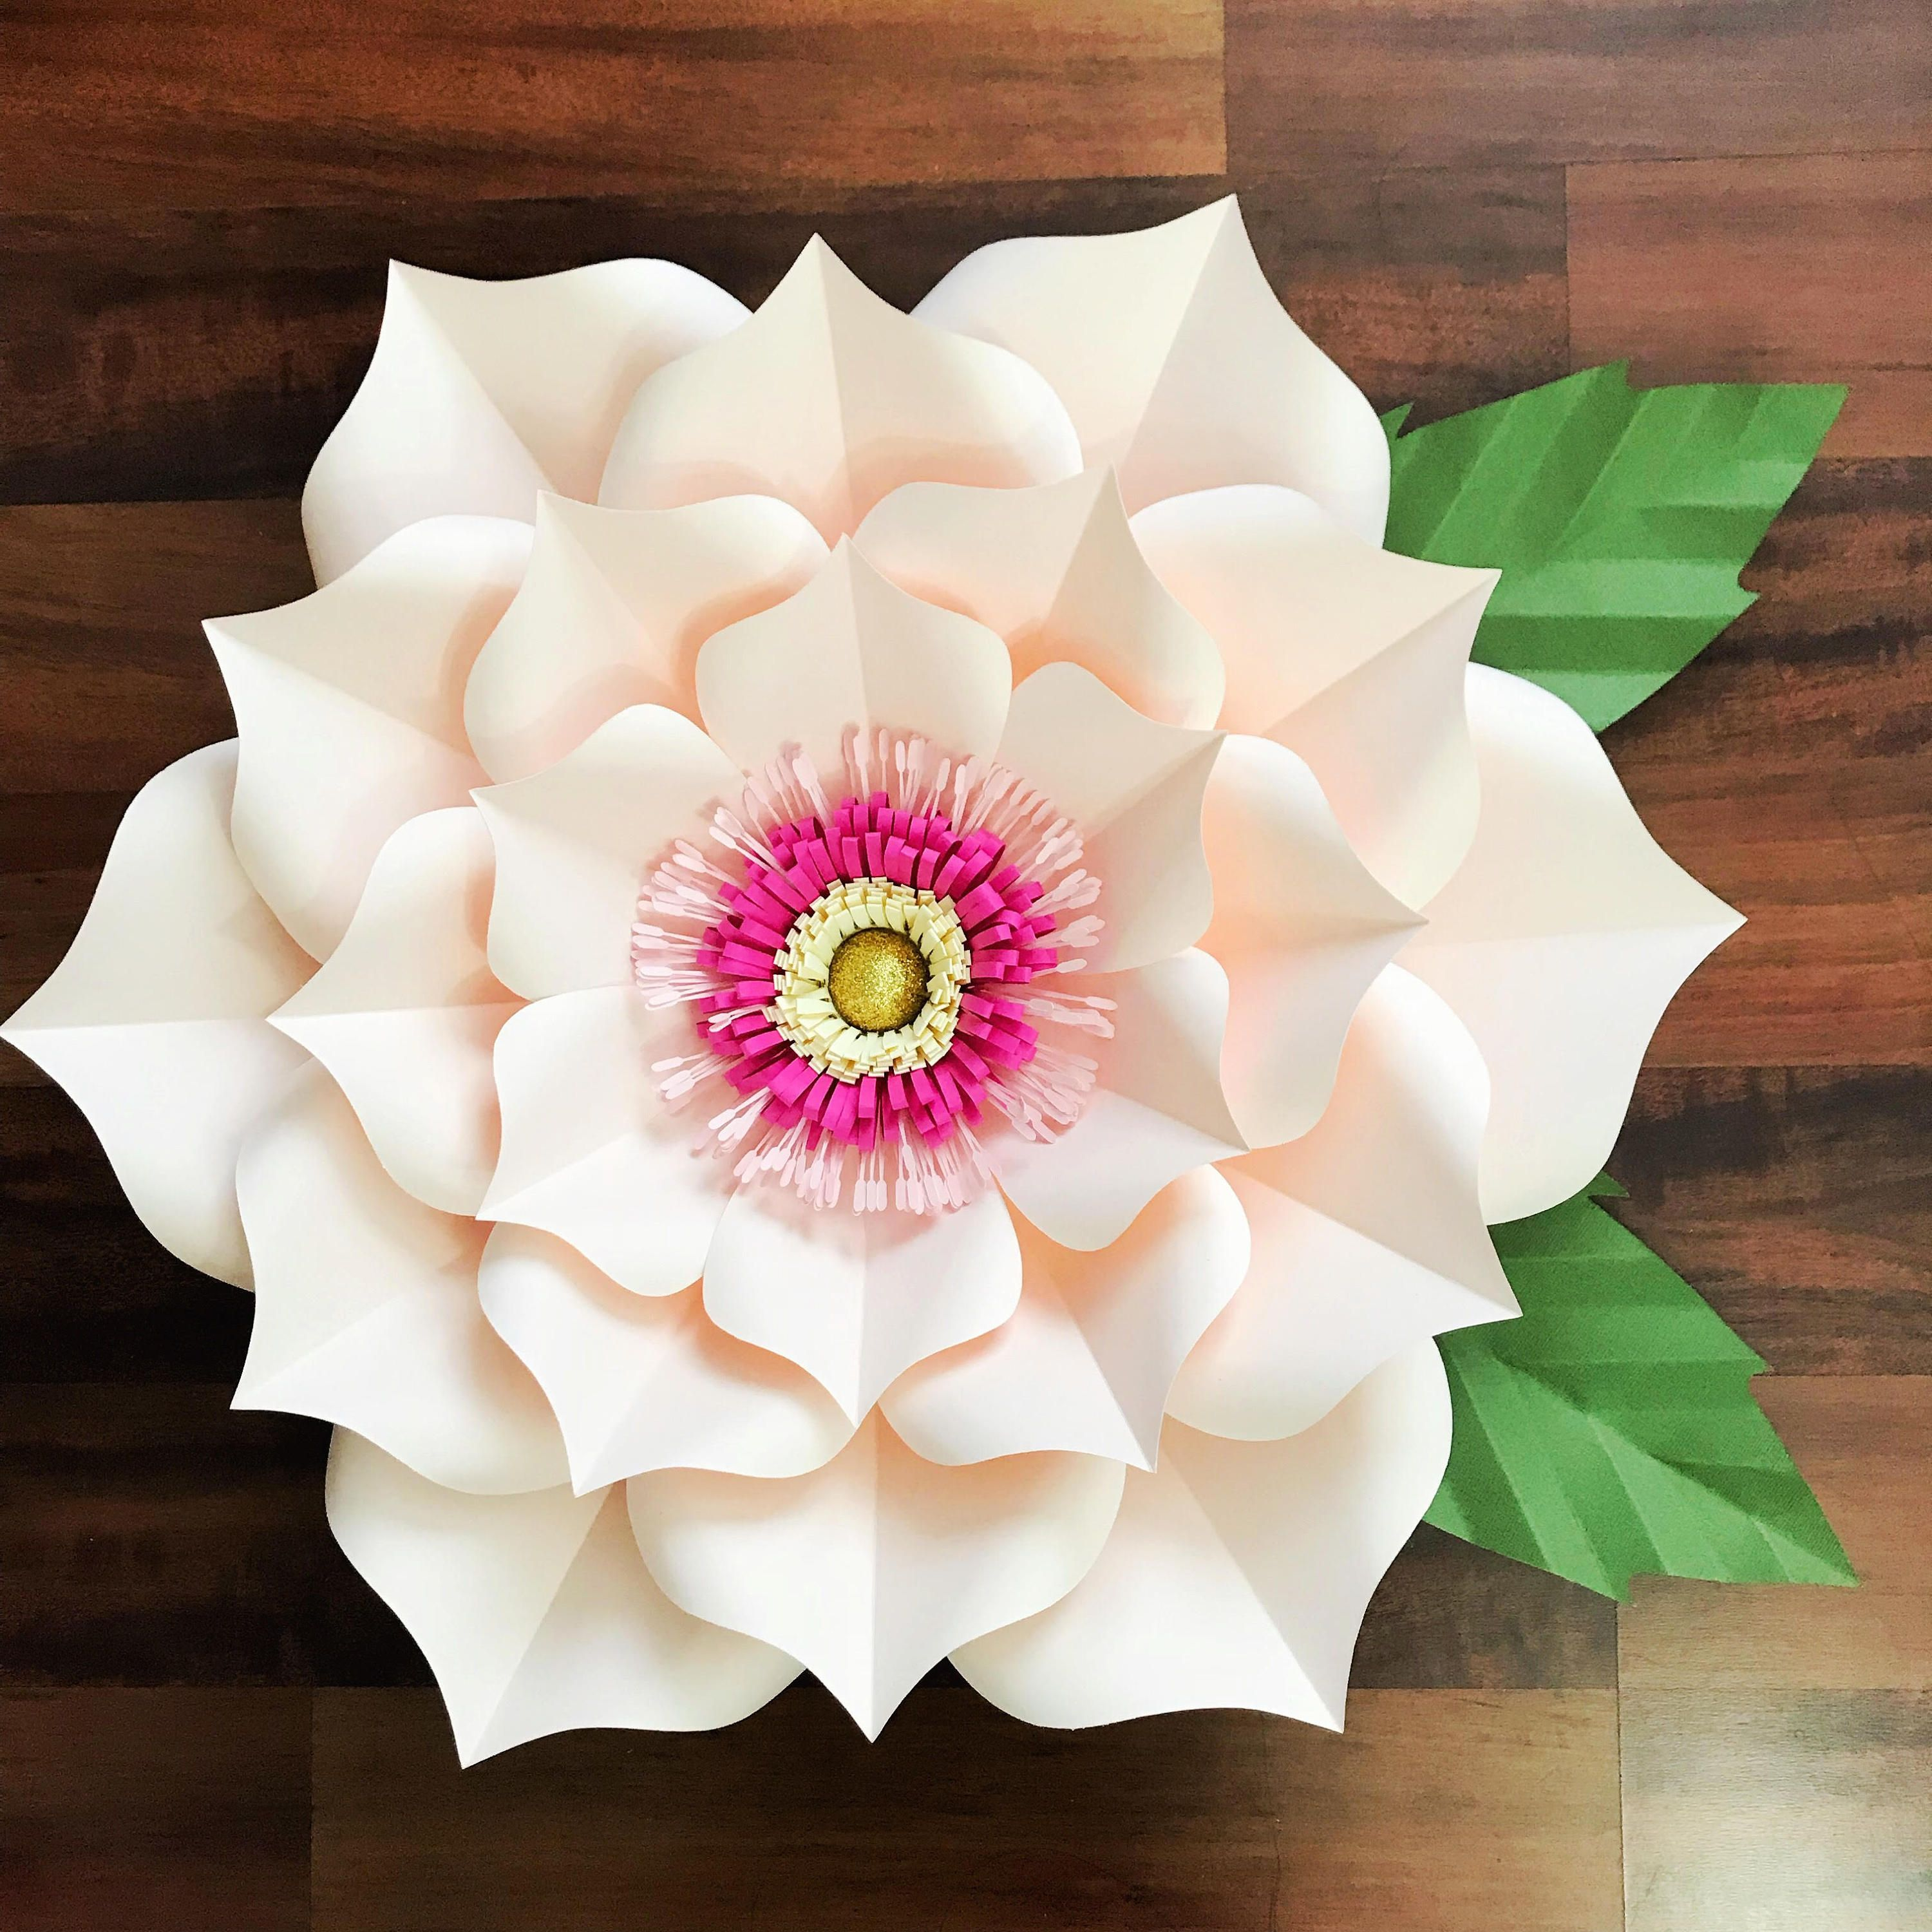 Pdf petal 3 paper flower template with base digital version pdf petal 3 paper flower template with base digital version trace and cut file for diy giant paper flower mightylinksfo